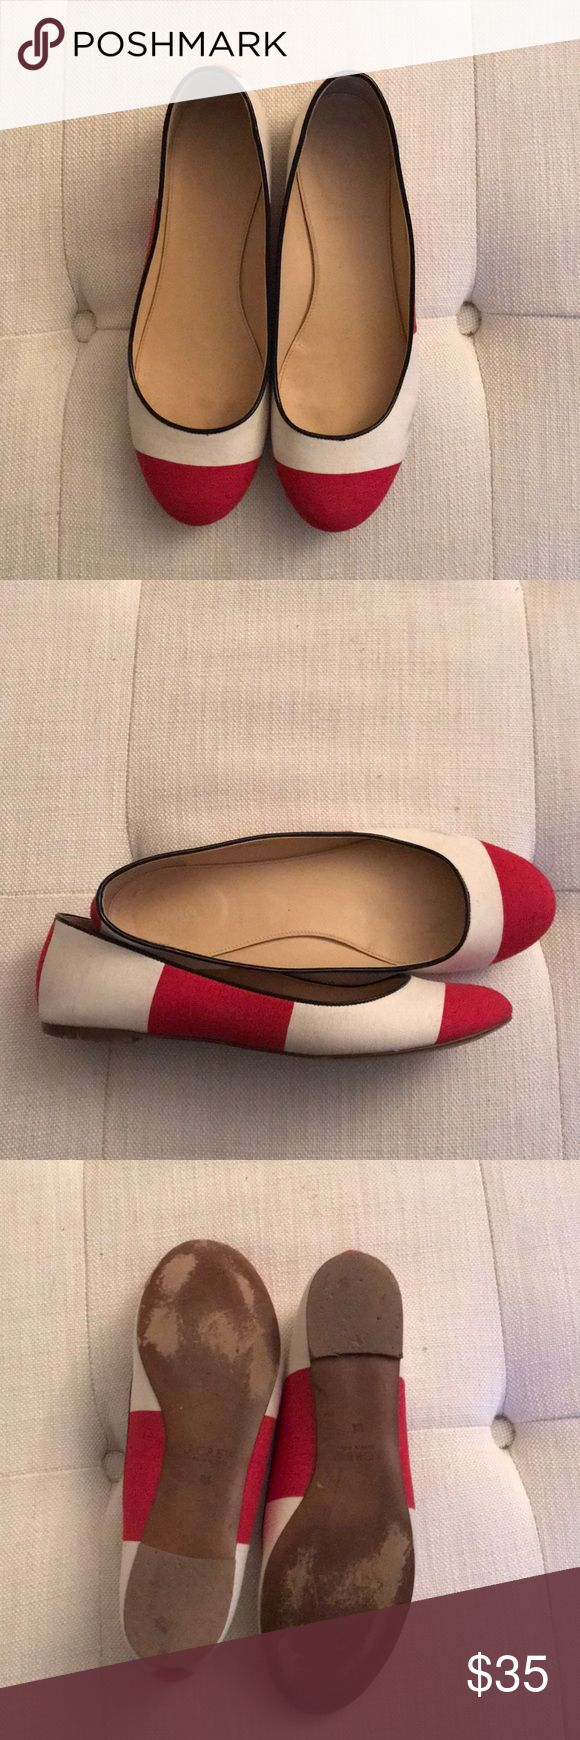 J.Crew Nora striped ballet flat J.Crew striped Nora ballet flat. Wide red and white stripe fabric flat tipped in black patent leather. Size 8.5. Excellent condition only worn once. J. Crew Shoes Flats & Loafers